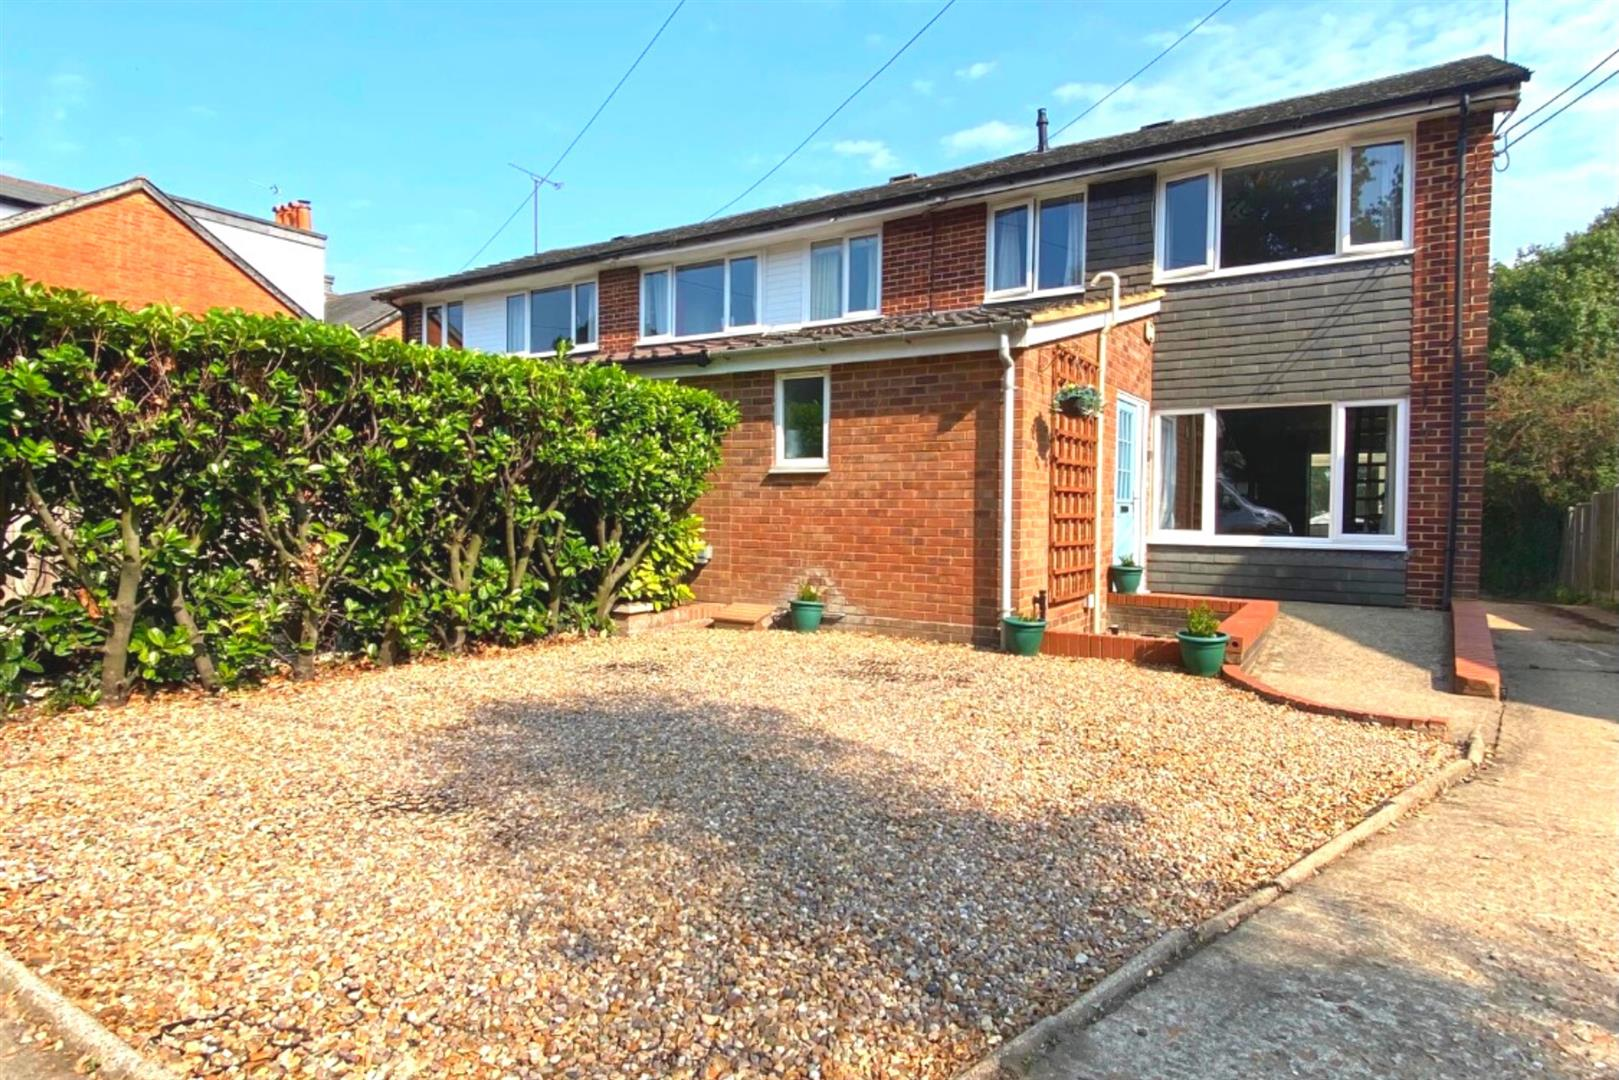 3 bed end of terrace for sale in Arborfield Cross, RG2